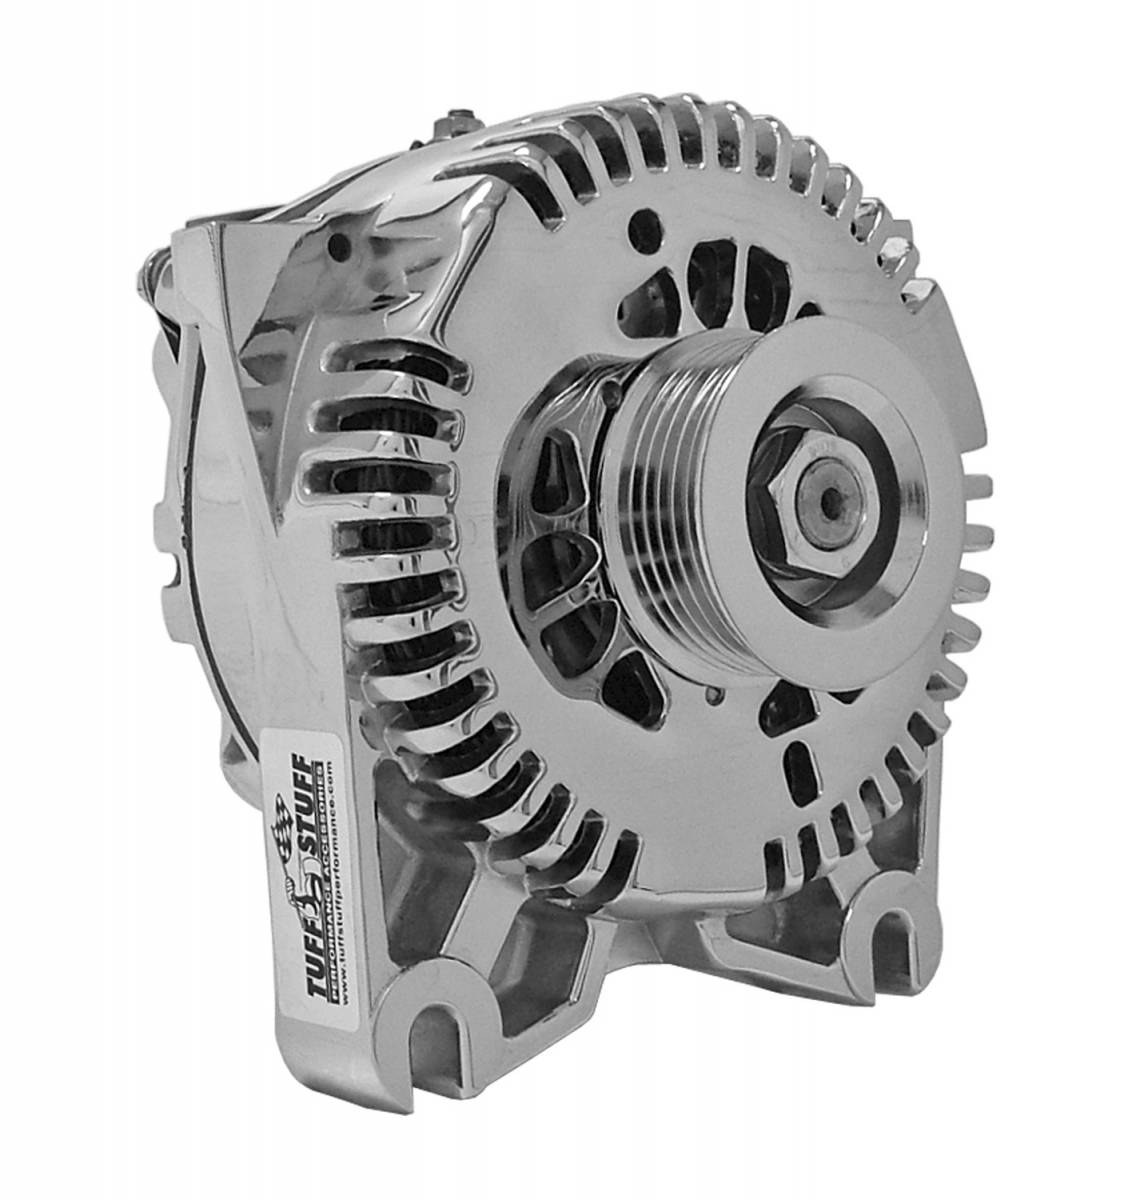 Tuff Stuff Performance - Alternator 225 AMP OEM Wire 6 Groove Clutch Pulley Chrome 8436D